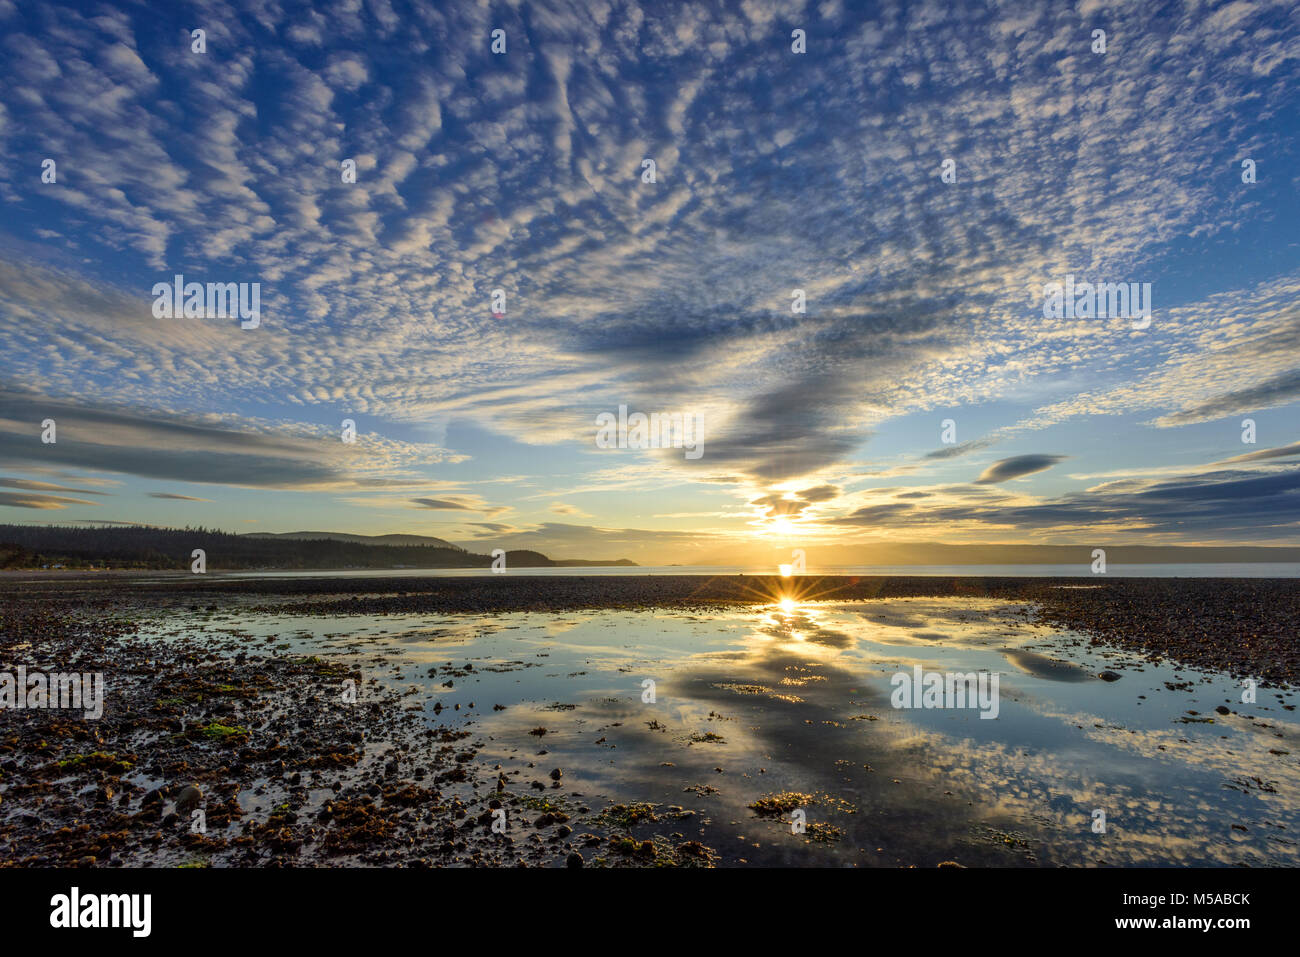 North America, Canada Canadian, British Columbia, Queen Charlotte Islands, West Coast, Moresby Island, sunset at - Stock Image